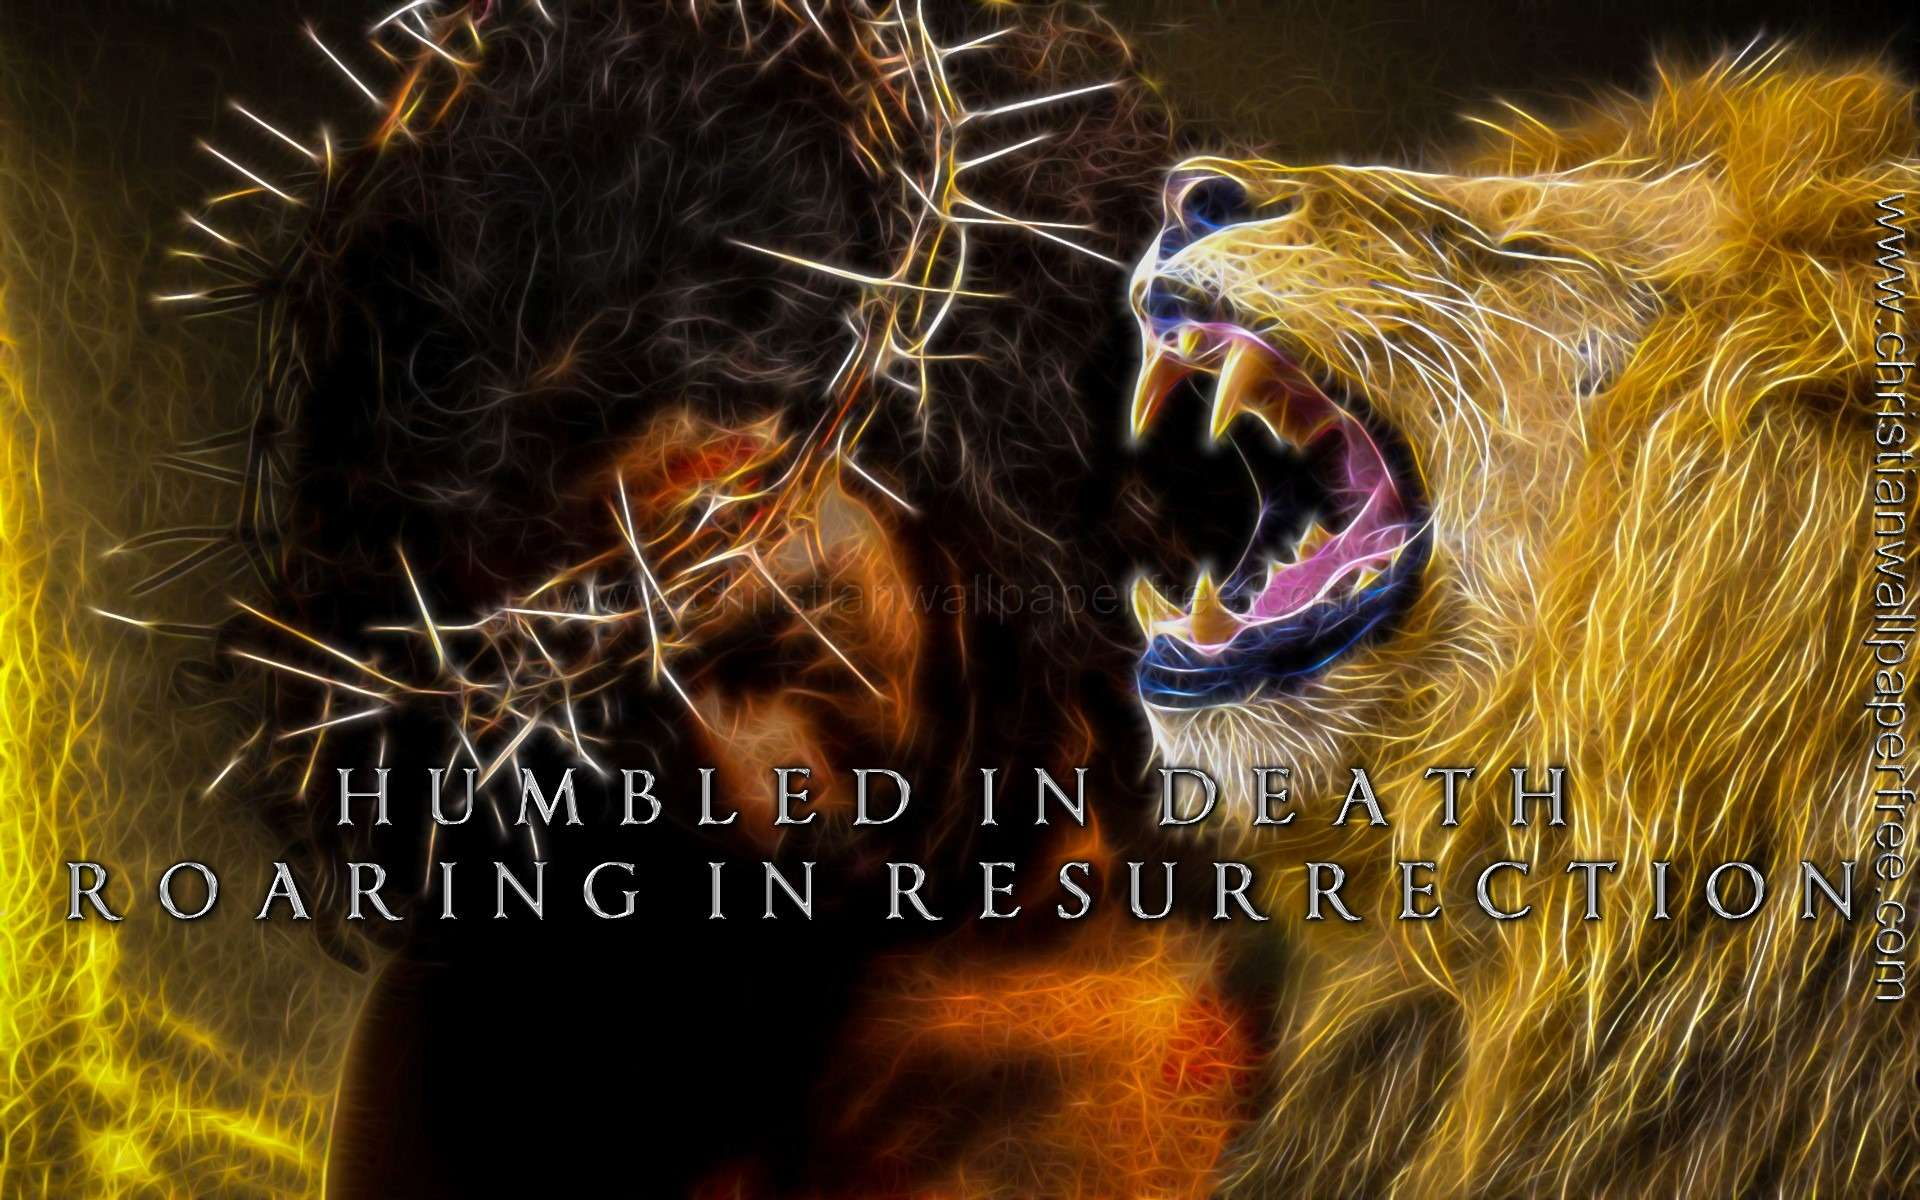 Humbled in Death Roaring in Resurrection